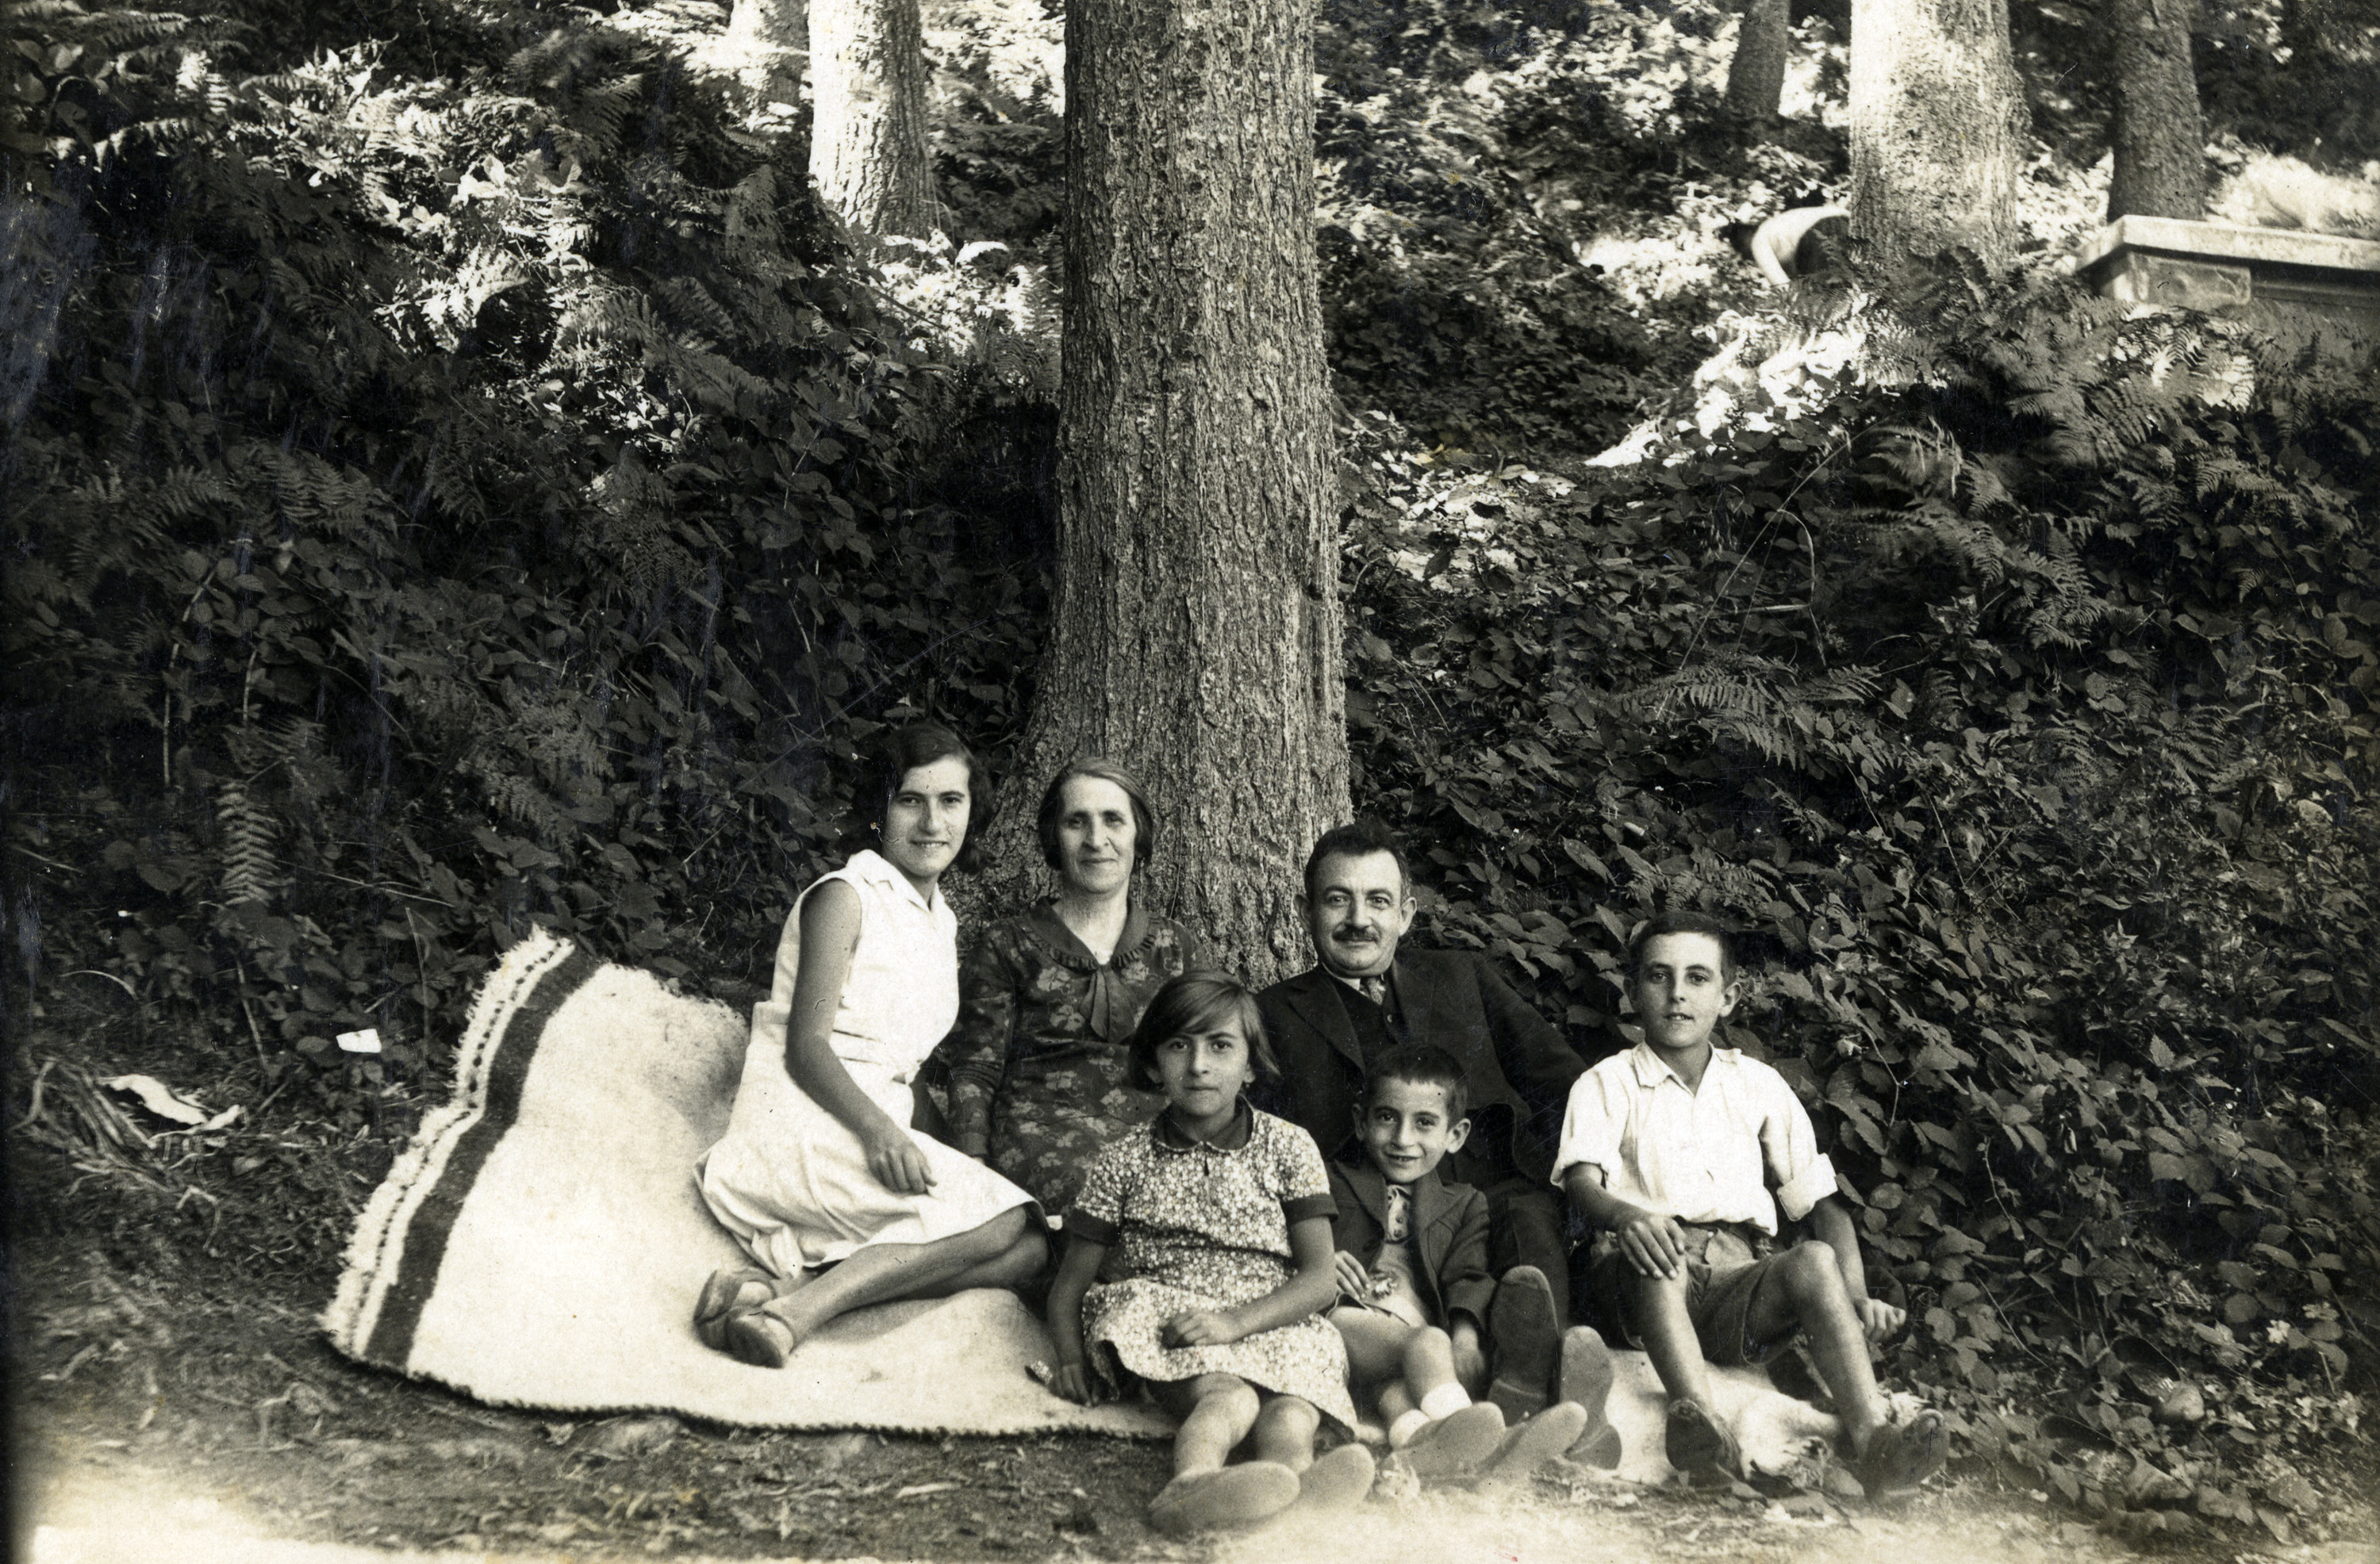 The Fransevic family poses together, seated under a tree.  Among those pictured are parents Rachel and Benveniste Fransevic (back), with four of their five children: (left to right) Anna, Claire, Jacques, and Izak.